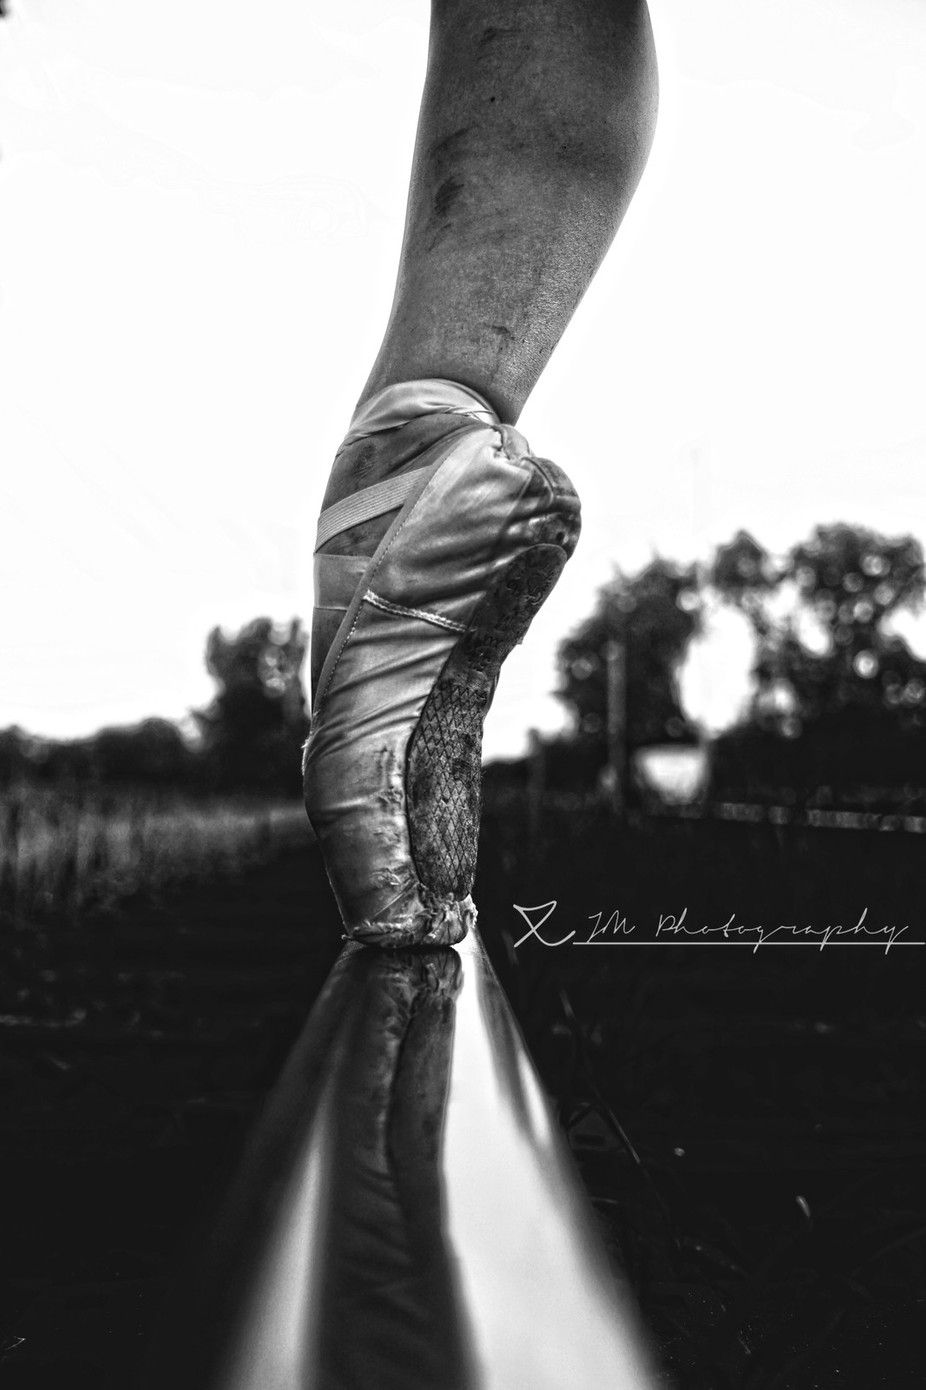 polished grit by jmphotography2323 - Cool Shoes Photo Contest